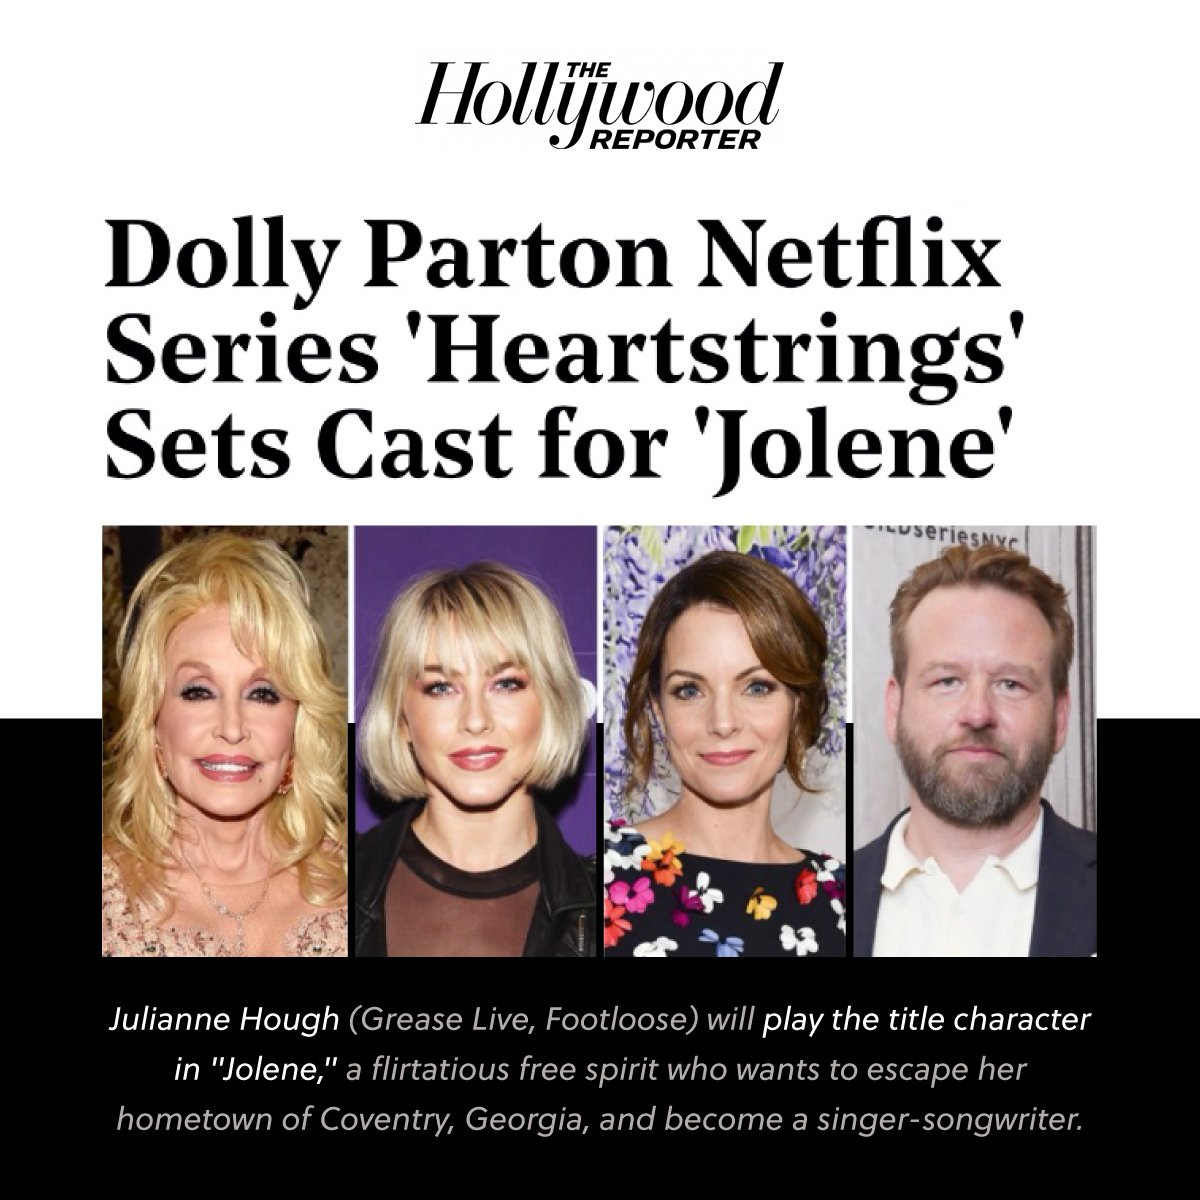 Julianne Hough On Twitter Such An Honor To Be Working With